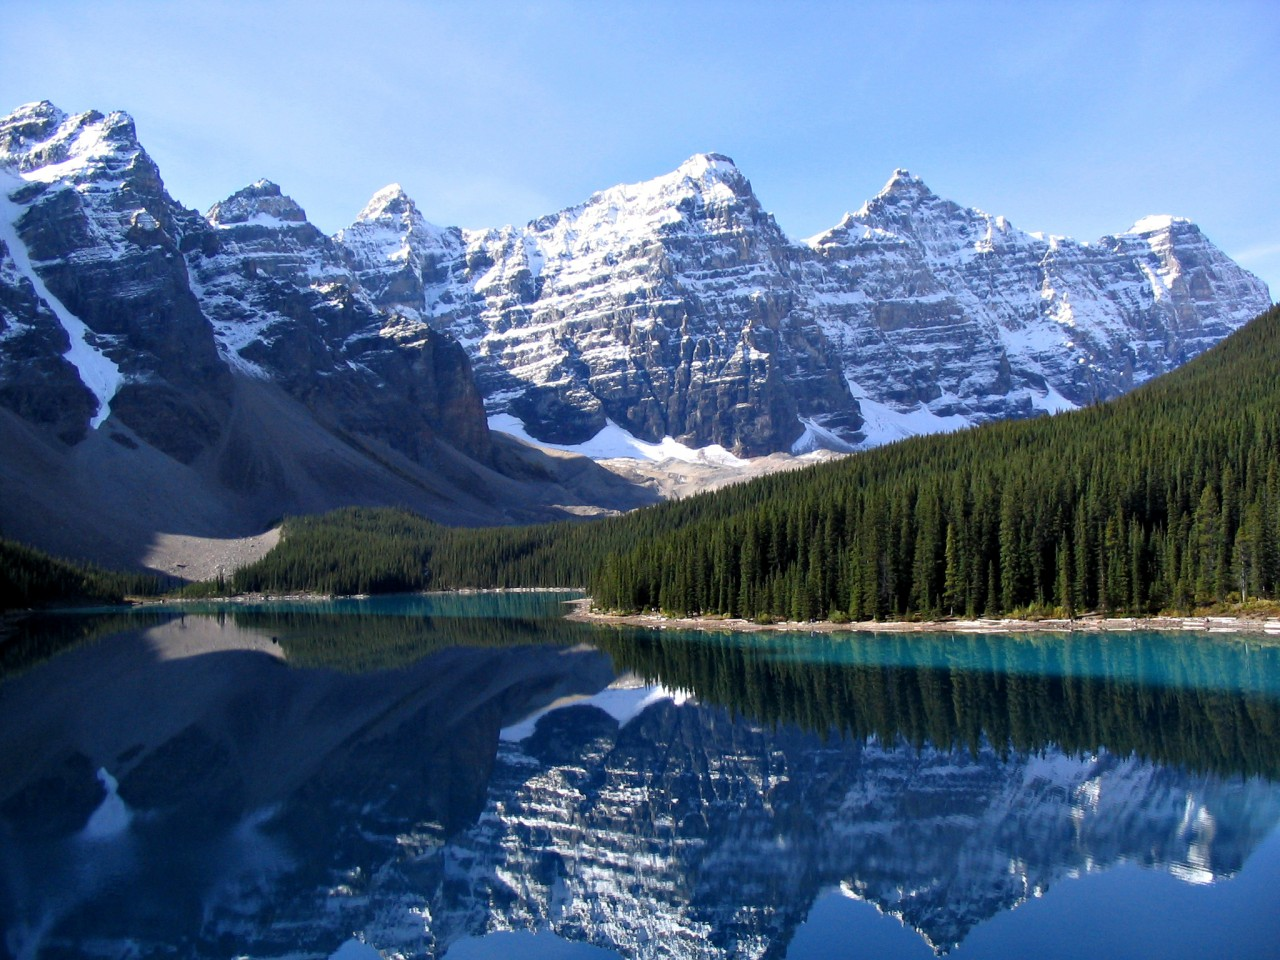 Moraine lake, Banff National Park. So beautiful!